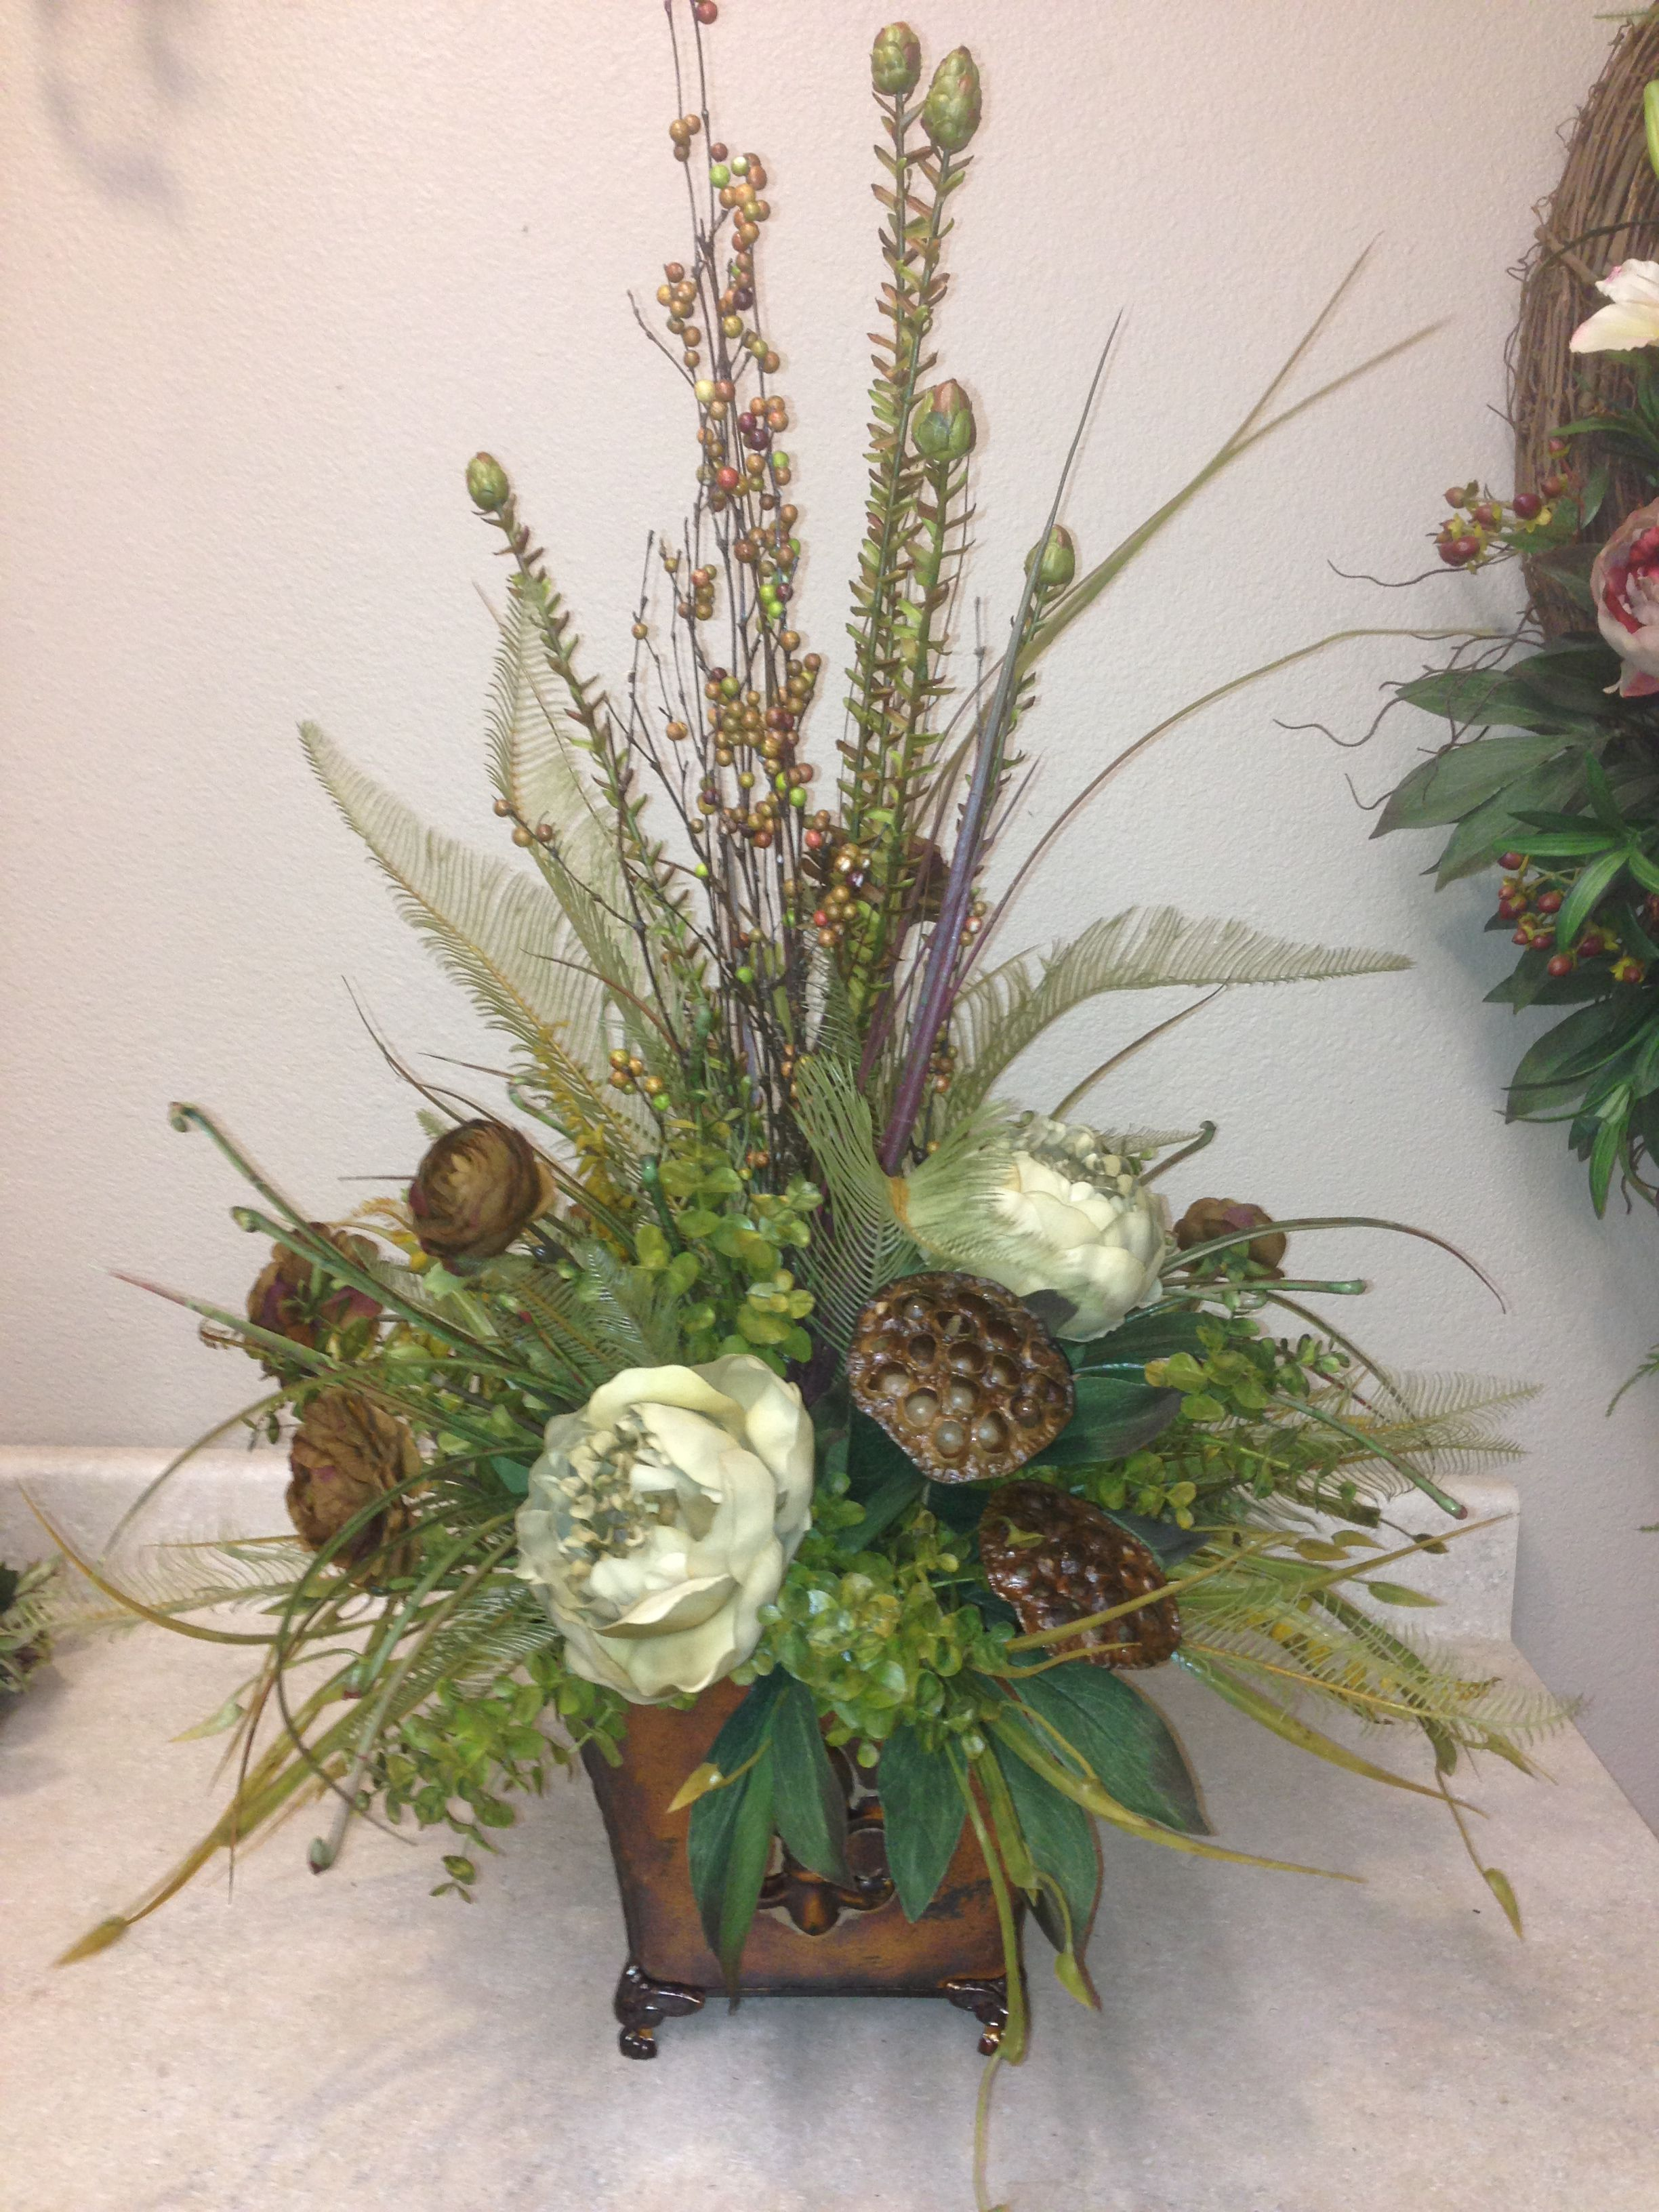 Tuscan Arrangement In Cream And Green With Brown Seed Pods Dried Flower Arrangements Artificial Floral Arrangements Silk Floral Arrangements